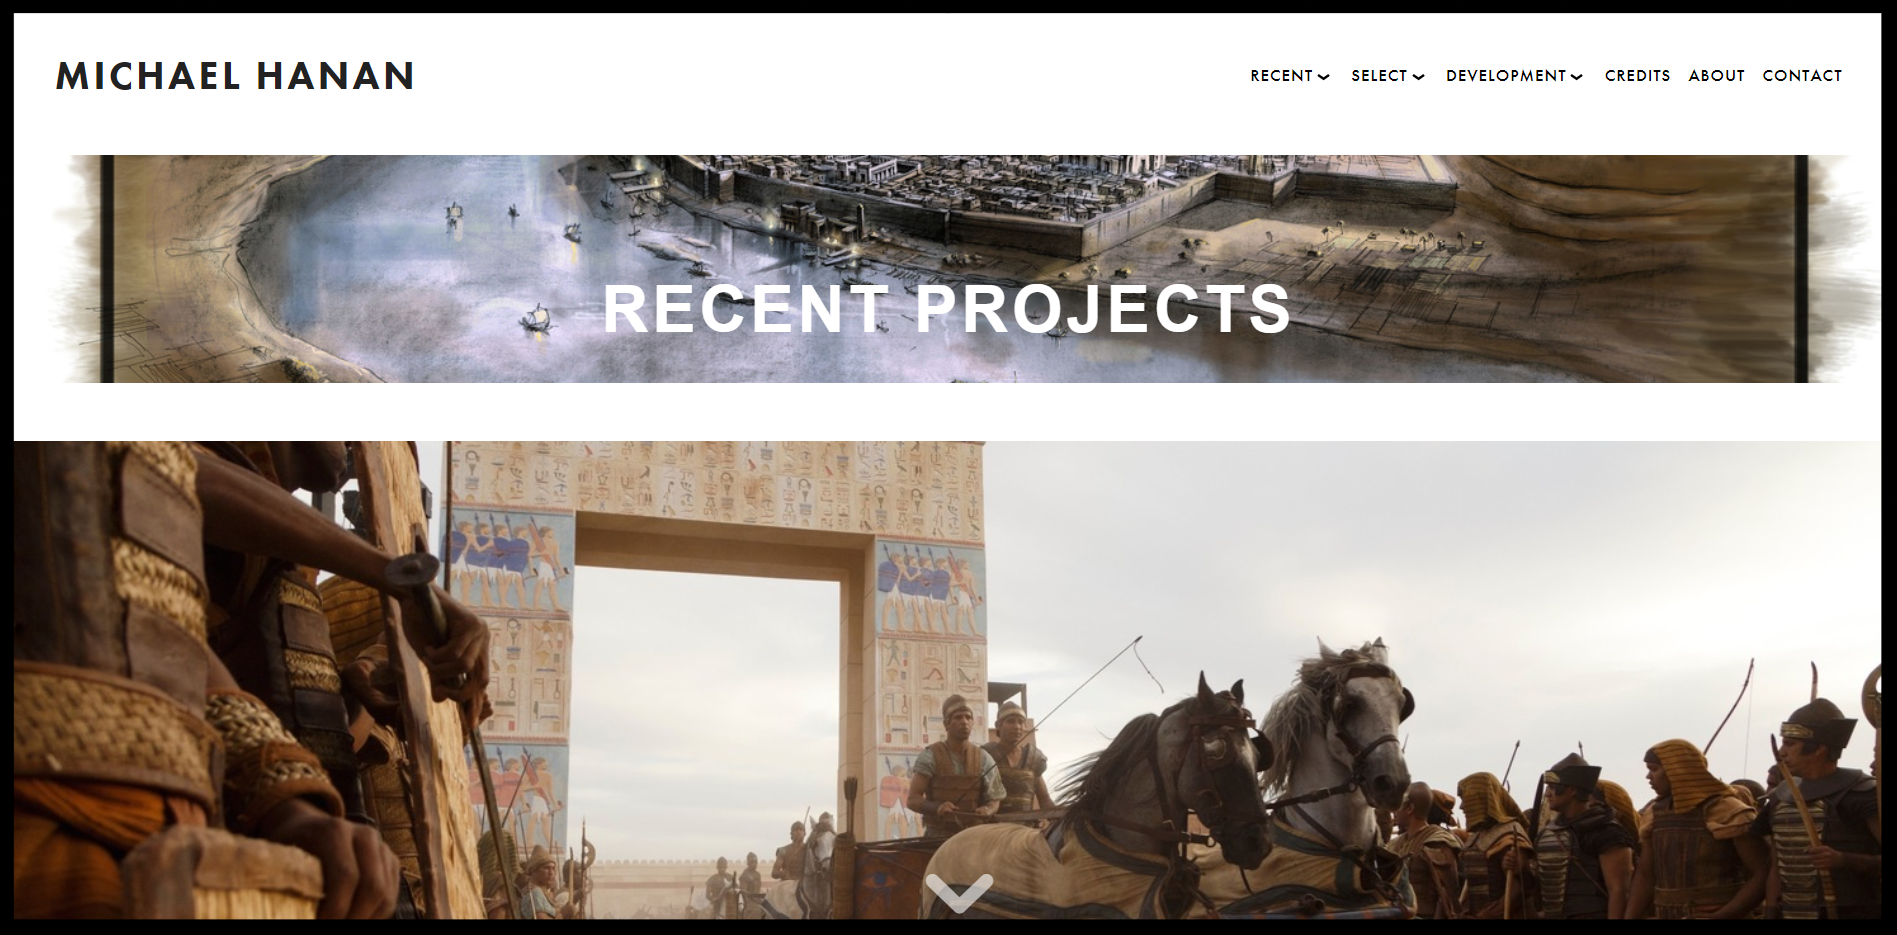 The homepage of the new website is shown above.